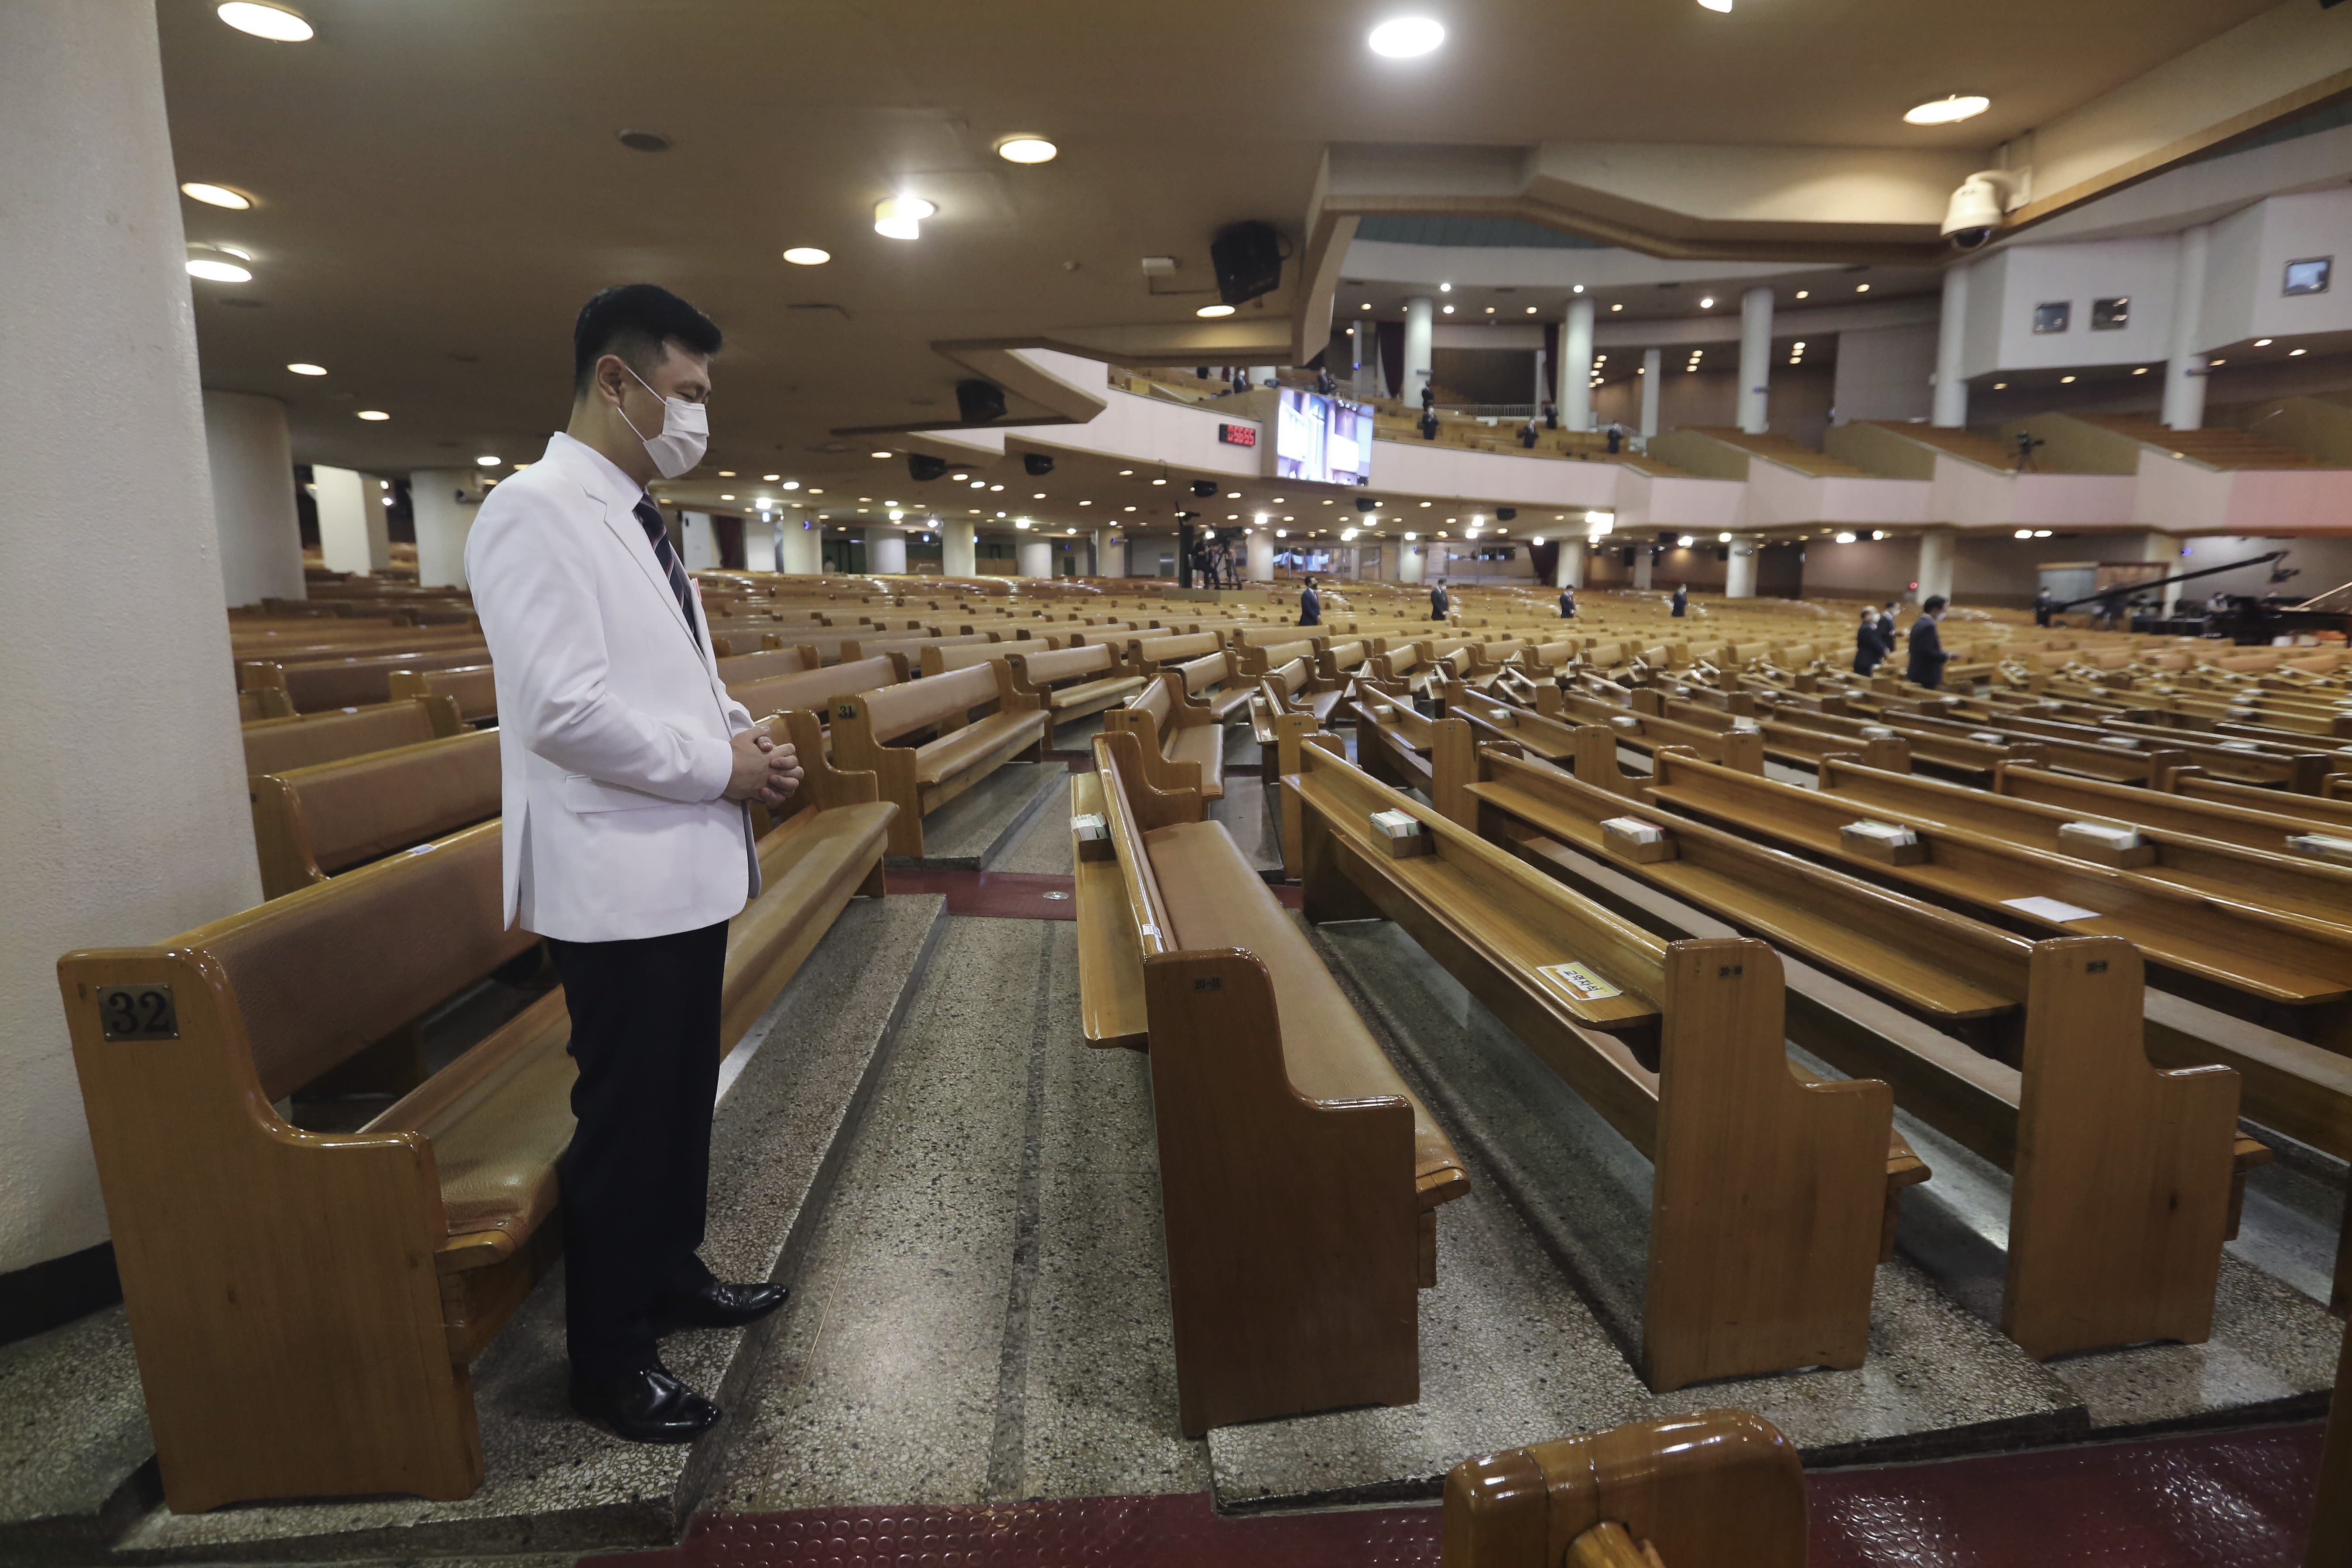 A pastor wearing a face mask to help protect against the spread of the coronavirus prays during a service at the Yoido Full Gospel Church in Seoul, South Korea, Sunday, Sept. 20, 2020. South Korea's new coronavirus tally has fallen below 100 for the first time in more than a month. (AP Photo/Ahn Young-joon)